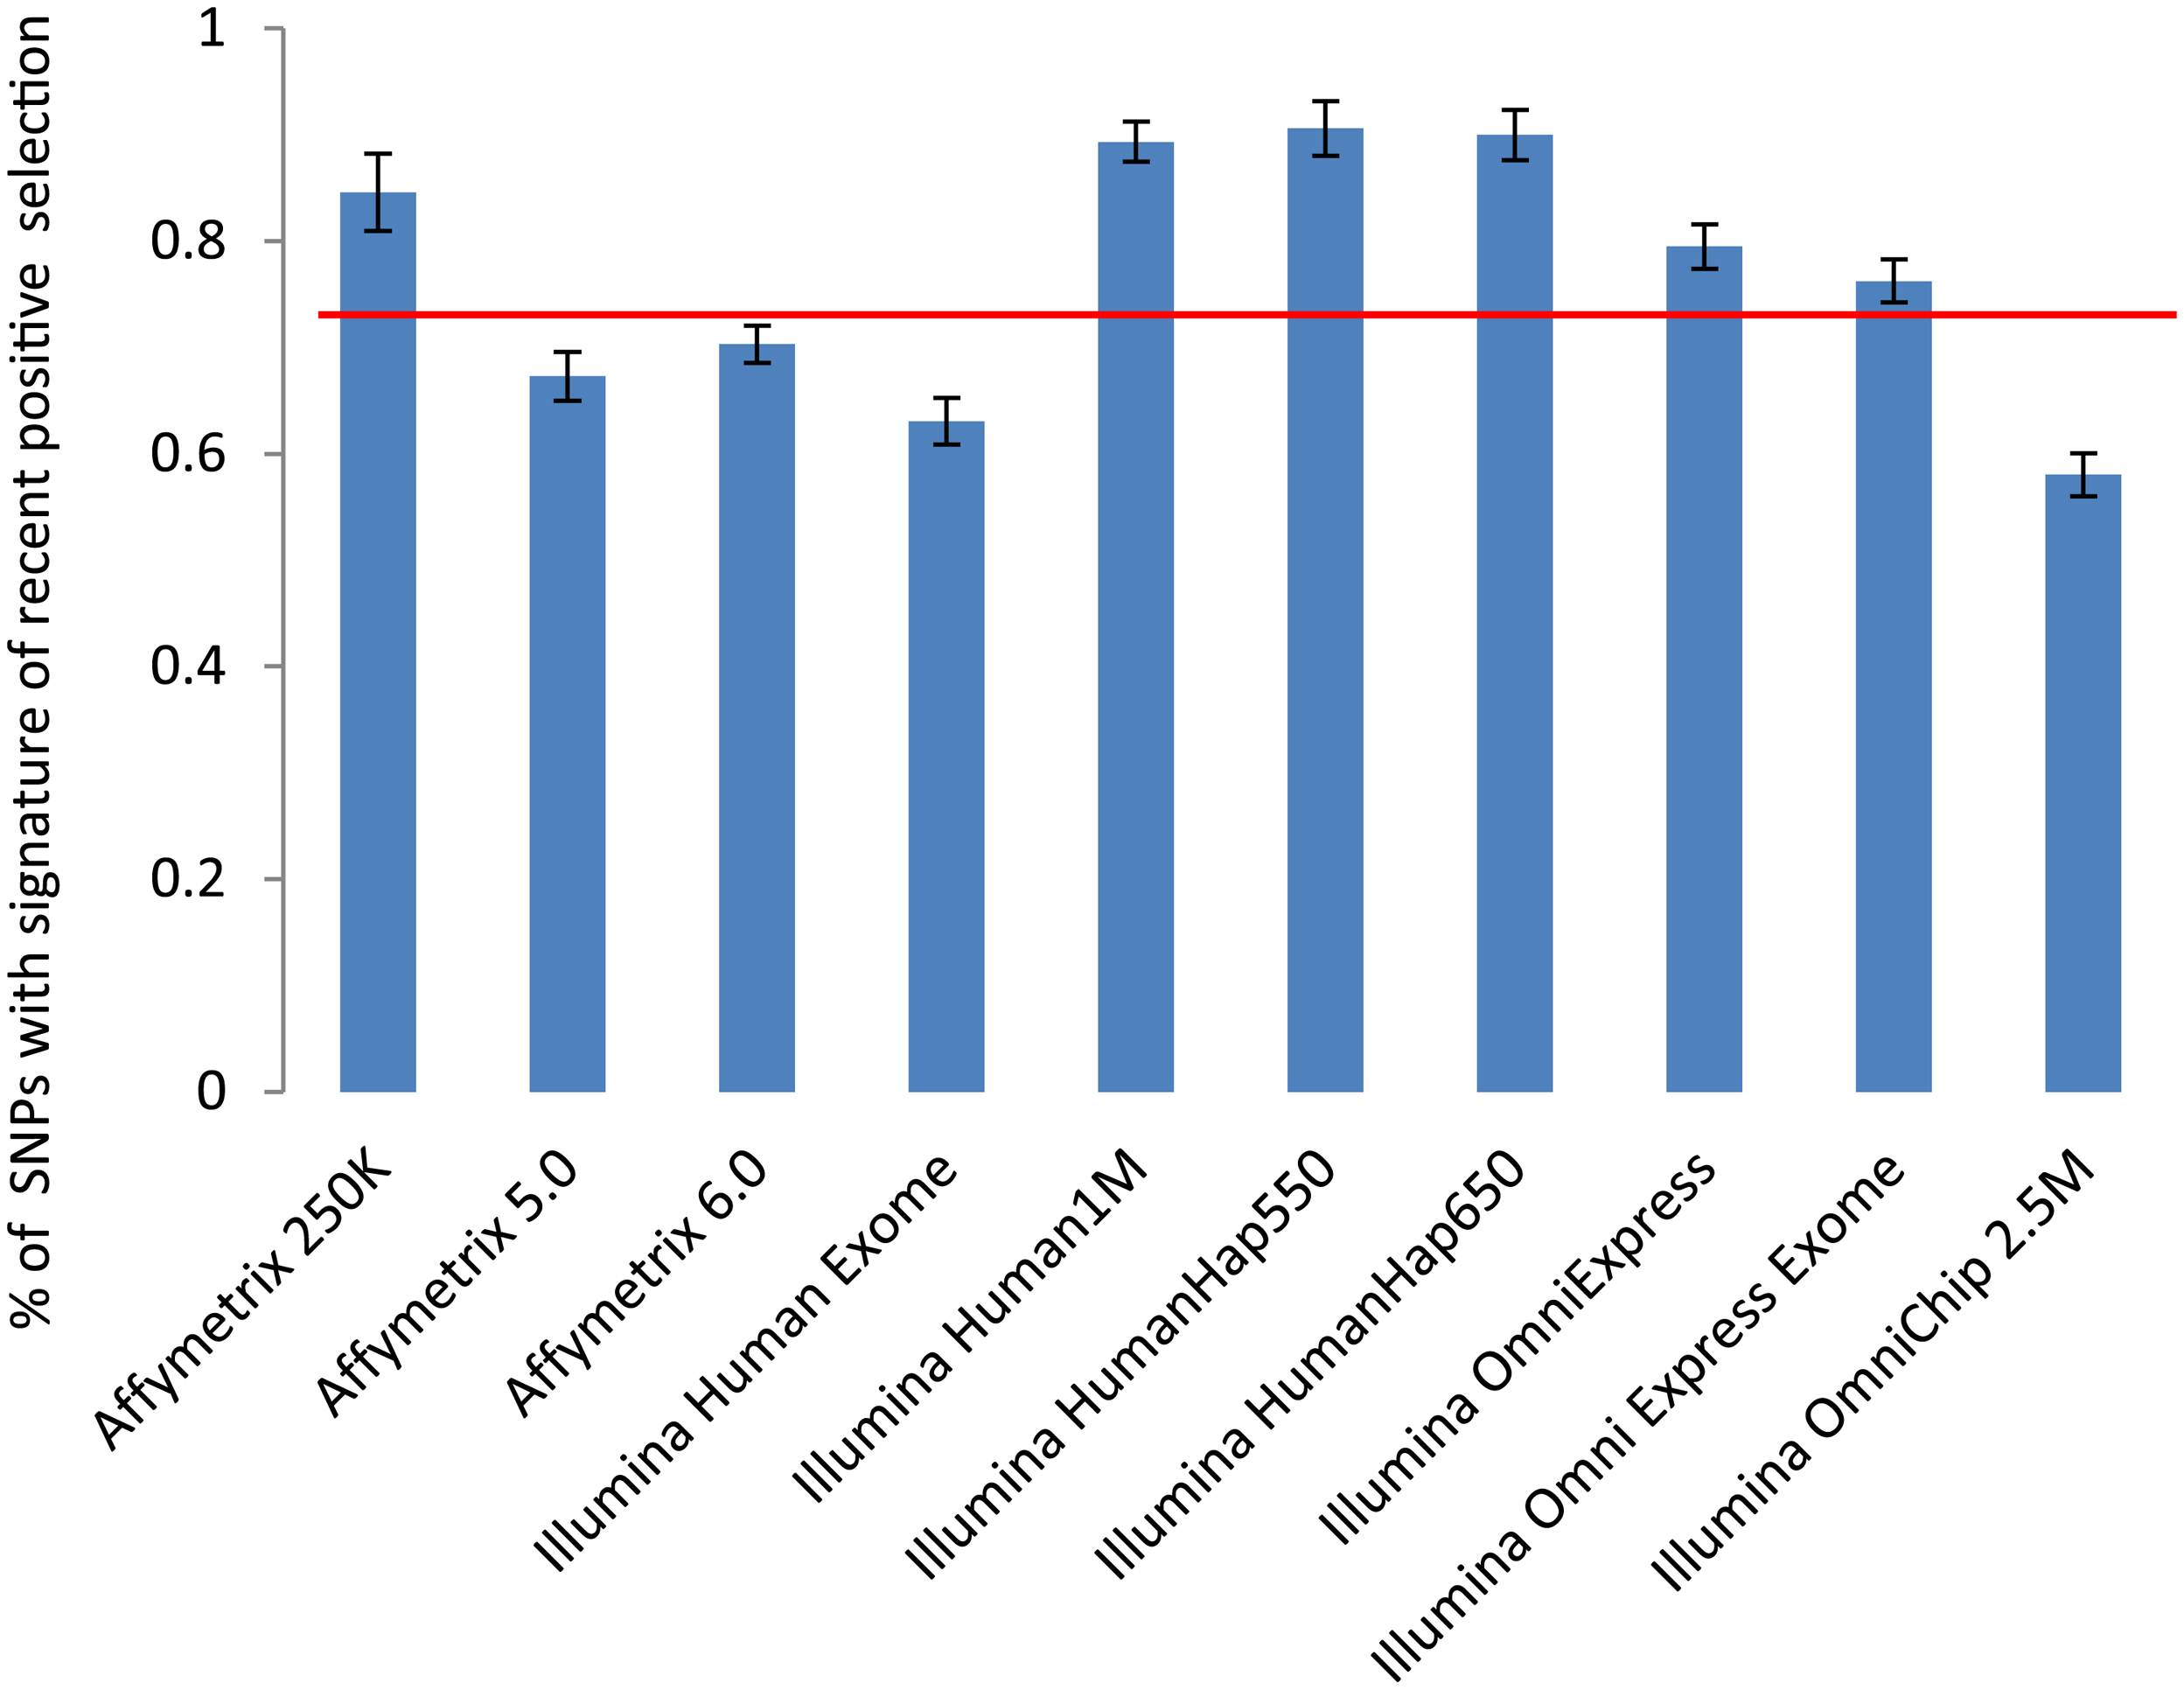 Proportions of SNPs with the signature of recent positive selection on the most commonly used genotyping platforms.